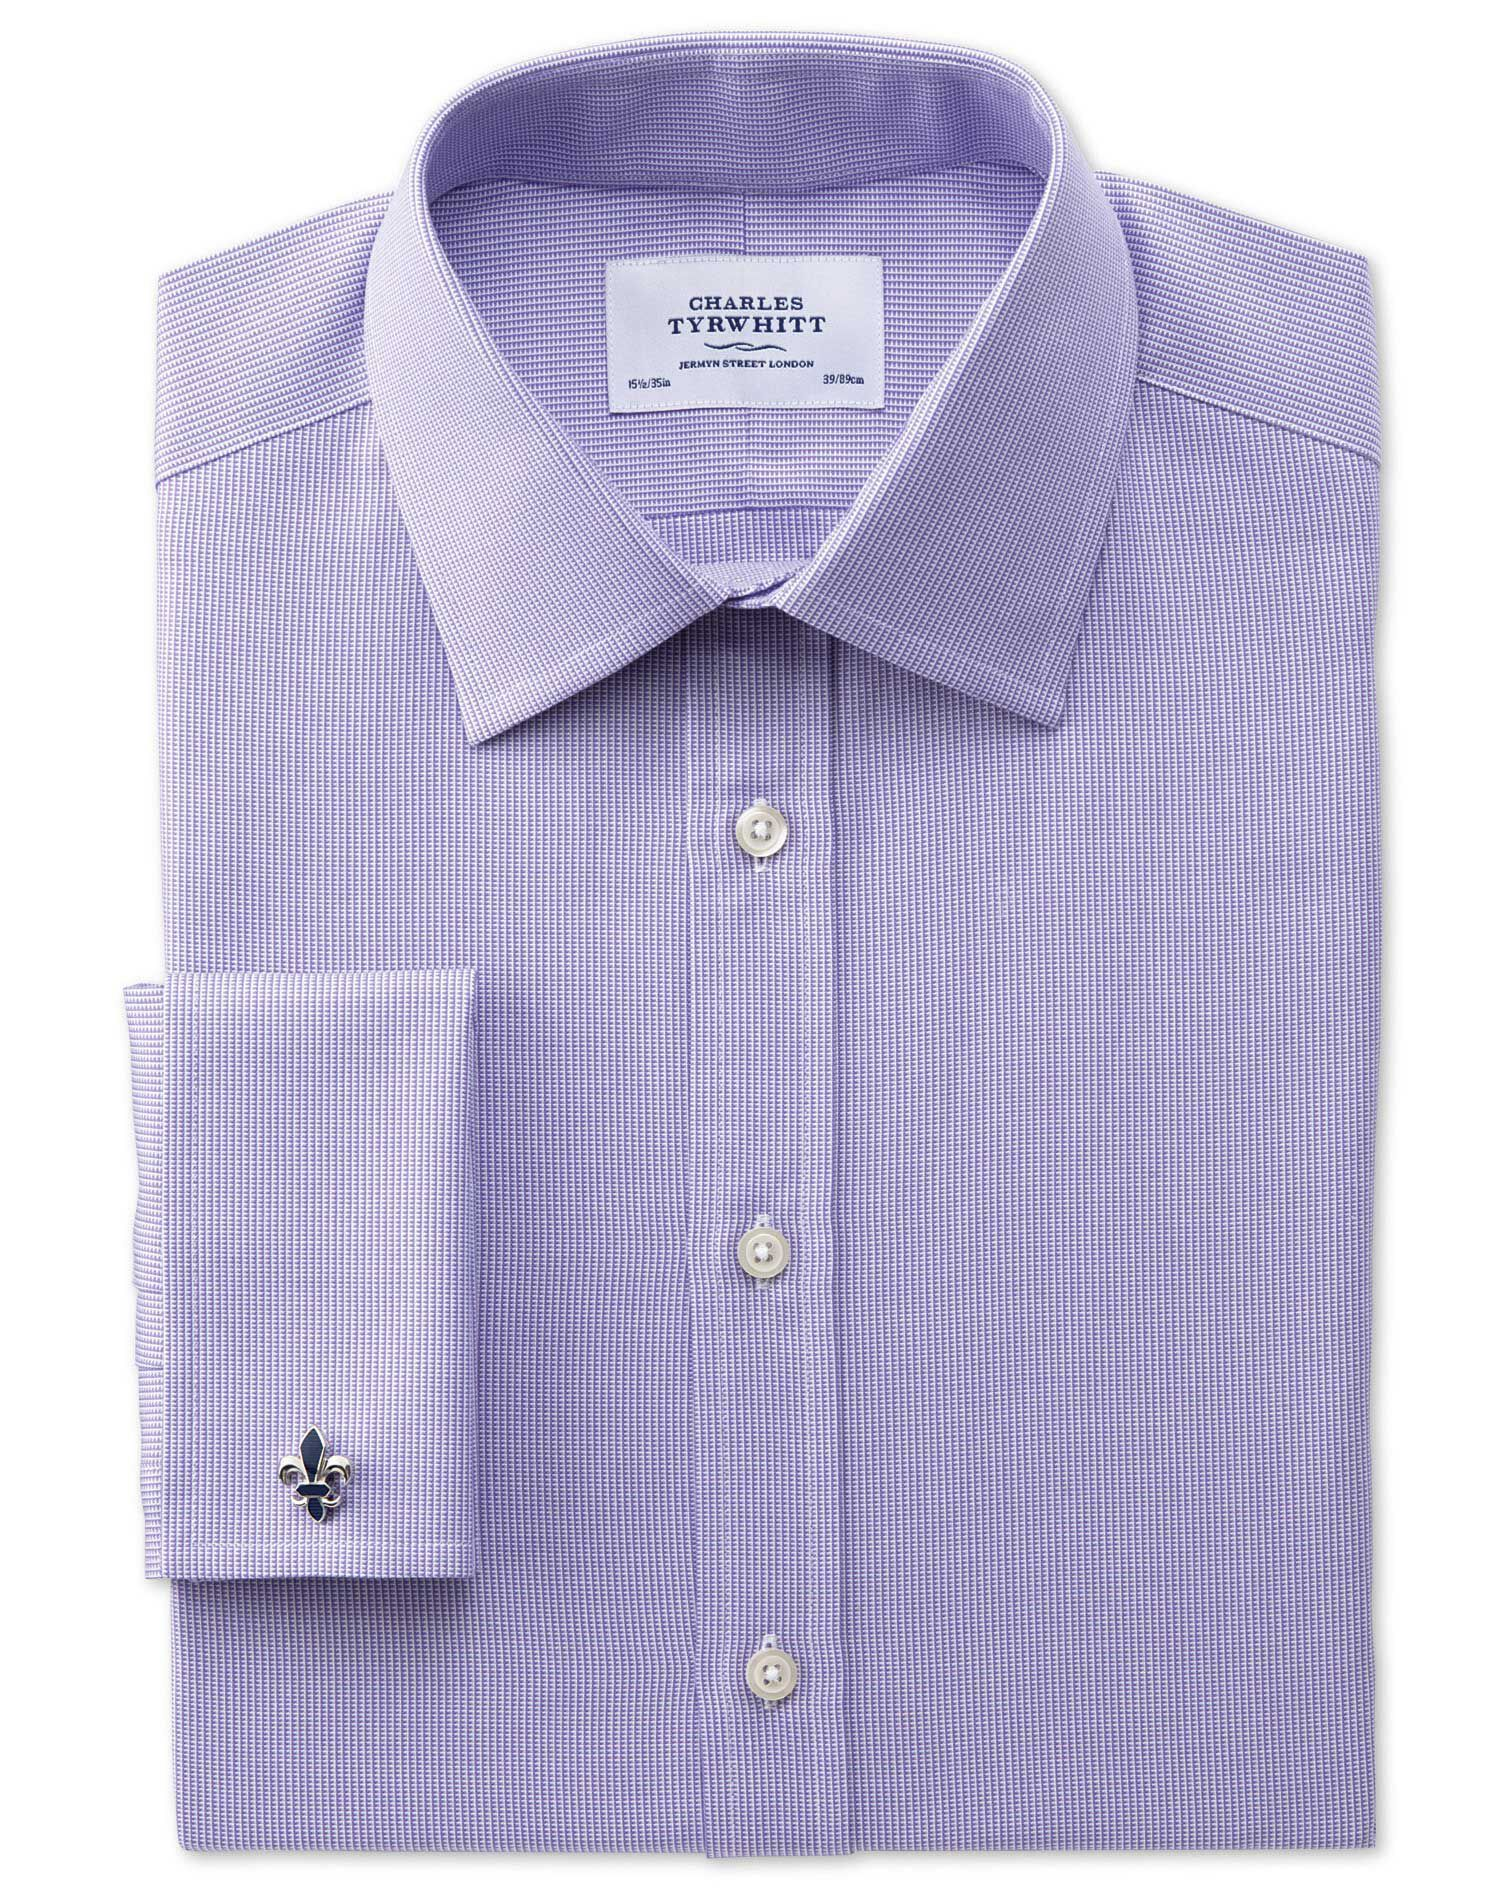 Slim Fit Oxford Lilac Cotton Formal Shirt Double Cuff Size 16/38 by Charles Tyrwhitt